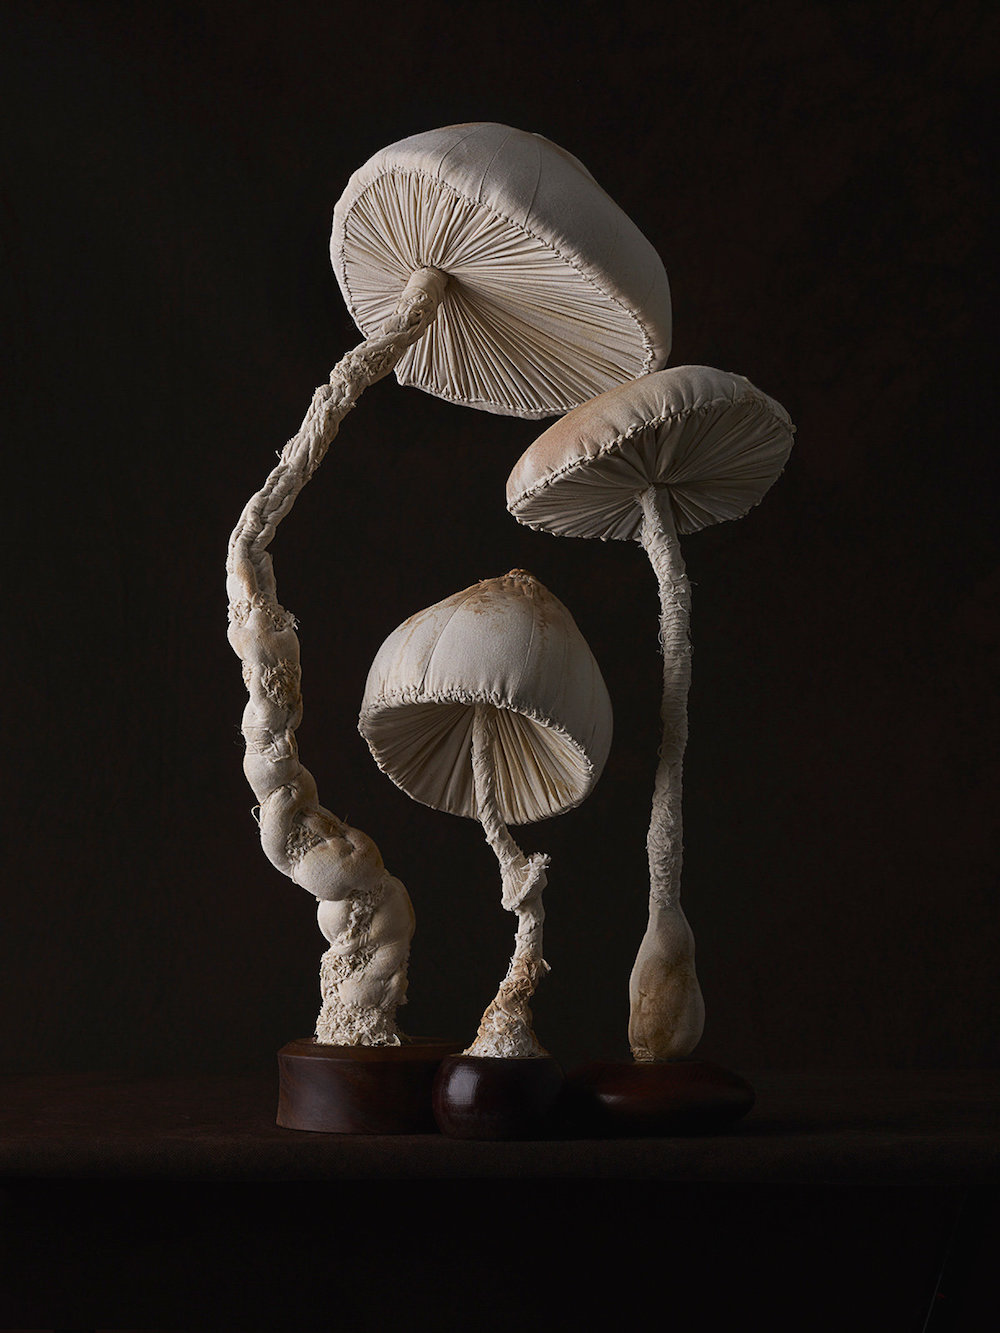 Sculptures of mushrooms toadstools, created from vintage fabrics 05